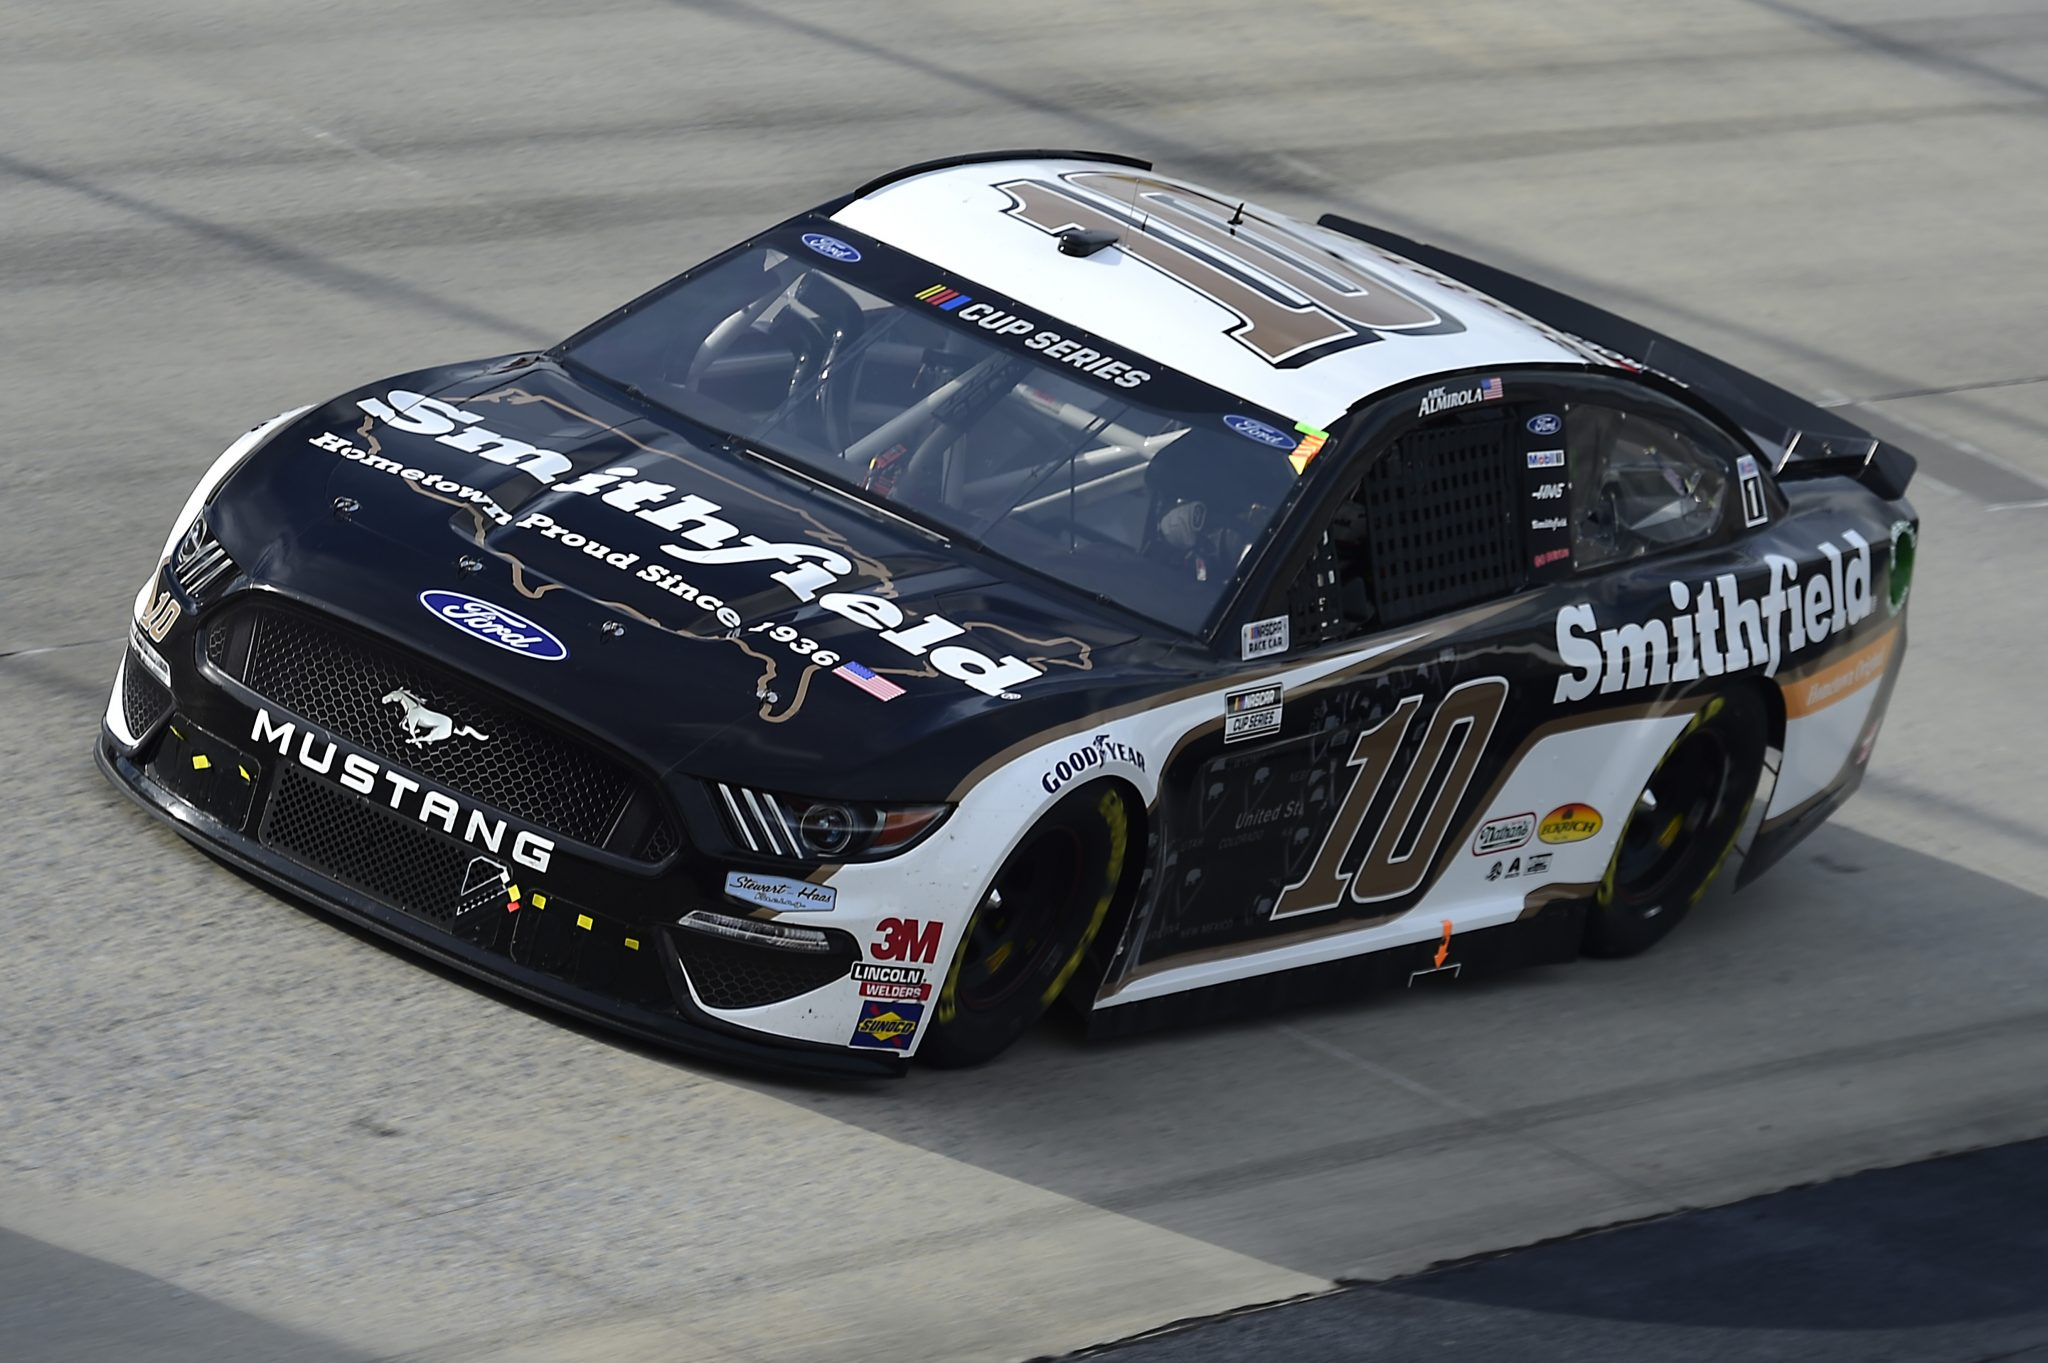 DOVER, DELAWARE - AUGUST 22: Aric Almirola, driver of the #10 Smithfield Hometown Original Ford, drives during the NASCAR Cup Series Drydene 311 at Dover International Speedway on August 22, 2020 in Dover, Delaware. (Photo by Jared C. Tilton/Getty Images) | Getty Images